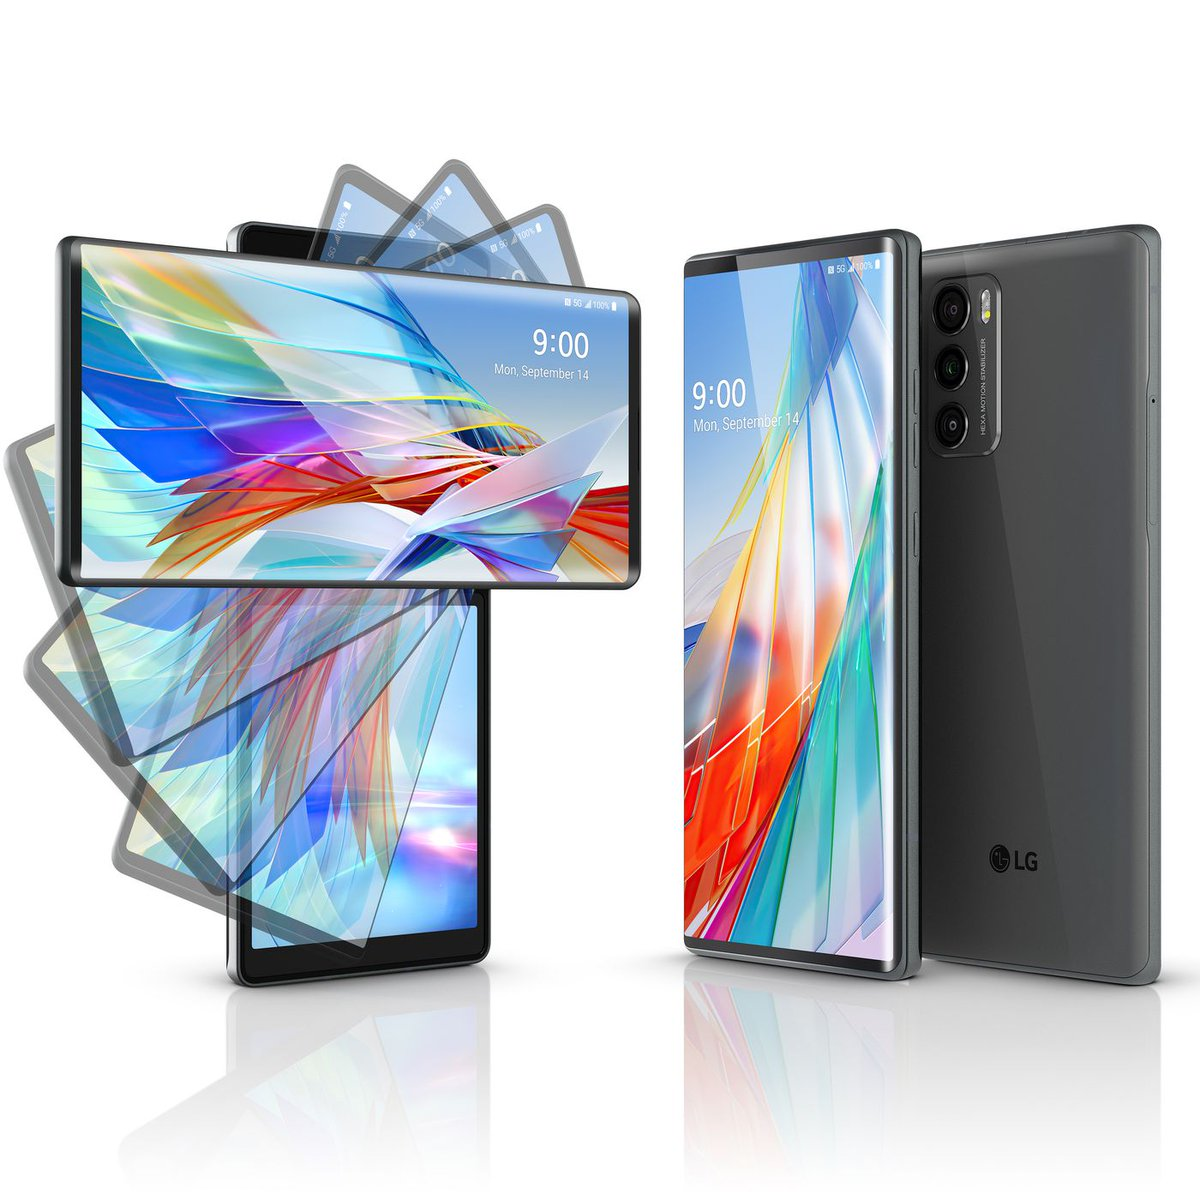 LG has launched the LG Wing – a brand new form factor for the dual-screen smartphone, with swiveling second display. https://t.co/fzOQcUO670 @BandwidthBlog https://t.co/OQXJCvkJzN